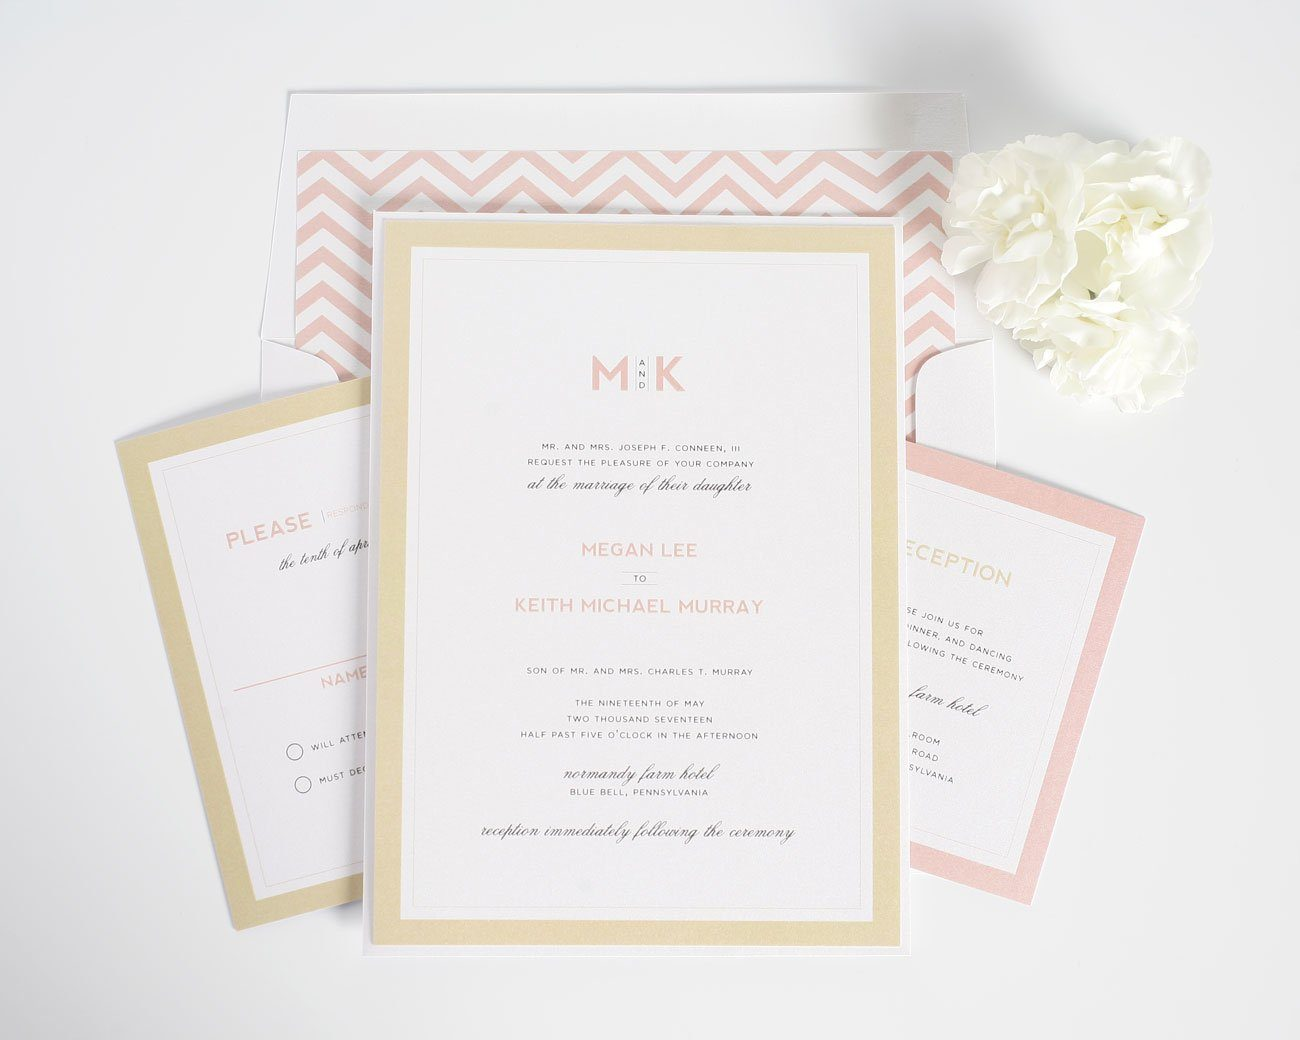 Blush and gold wedding invitations with chevron accents